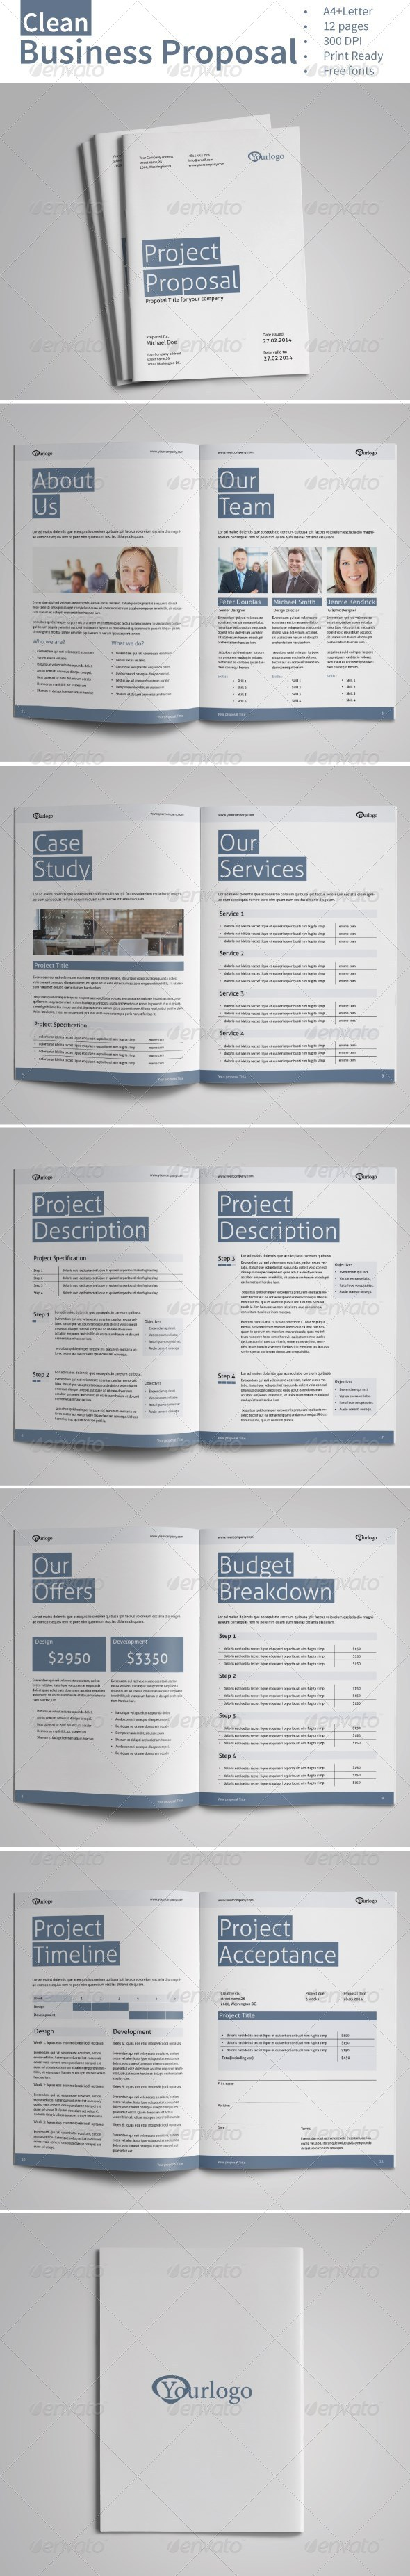 GraphicRiver Clean Business Proposal Vol.3 7526056